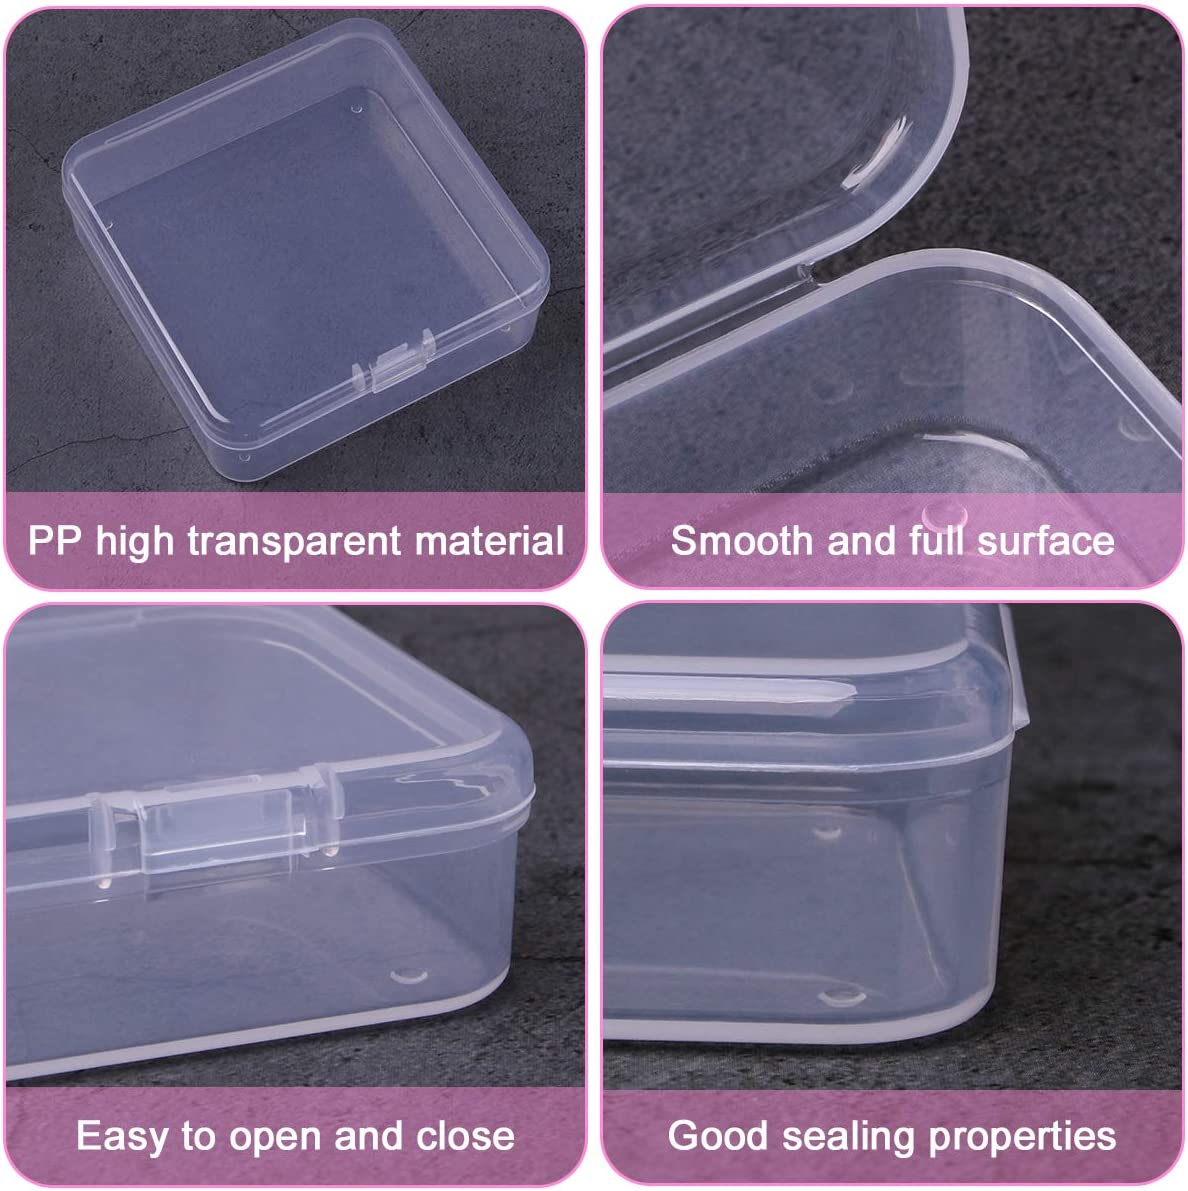 1.37 x 1.37 x 0.7 inches Jewelry 30 Pack Mini Clear Box Empty Case with Lid for Earplugs Aybloom Small Plastic Beads Storage Containers Crafts Hardware or Small Items Accessories